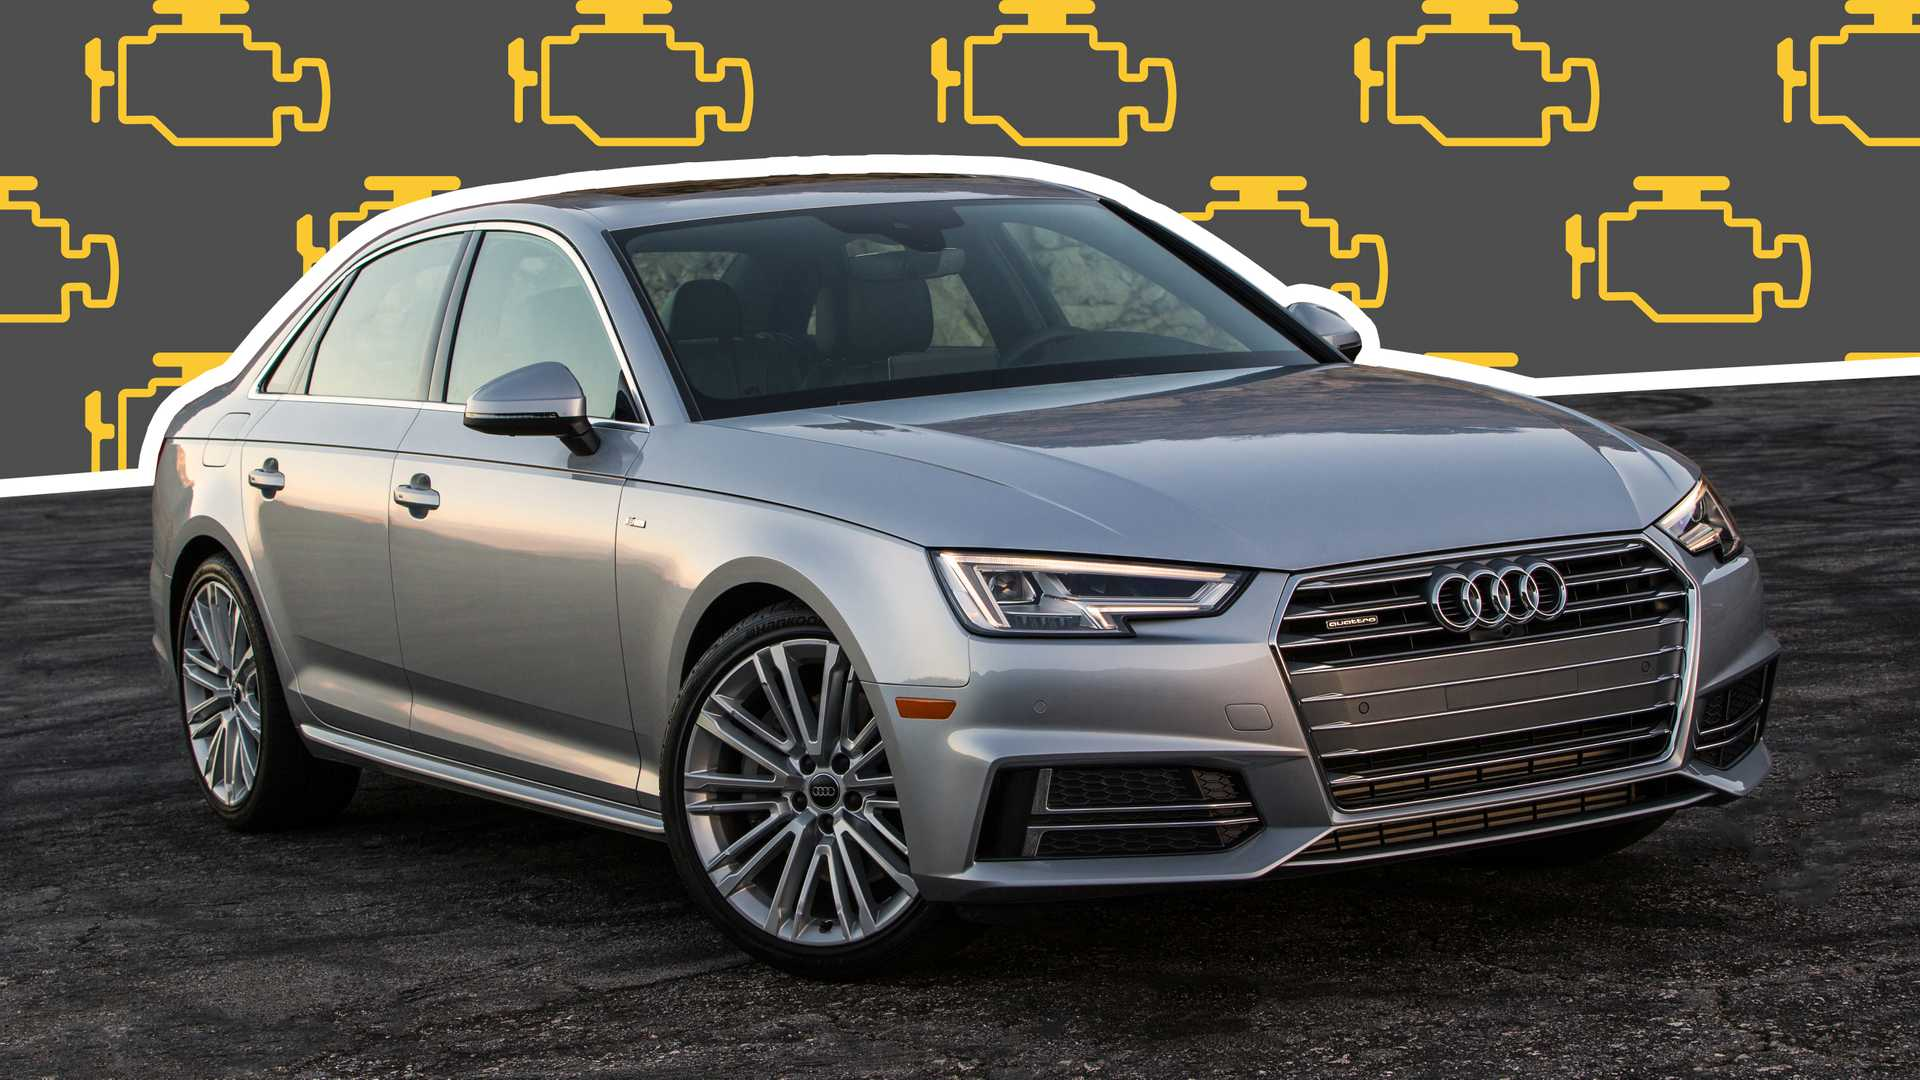 Audi A4 Oil Change Cost >> 15 Most Expensive Vehicles To Maintain And Repair